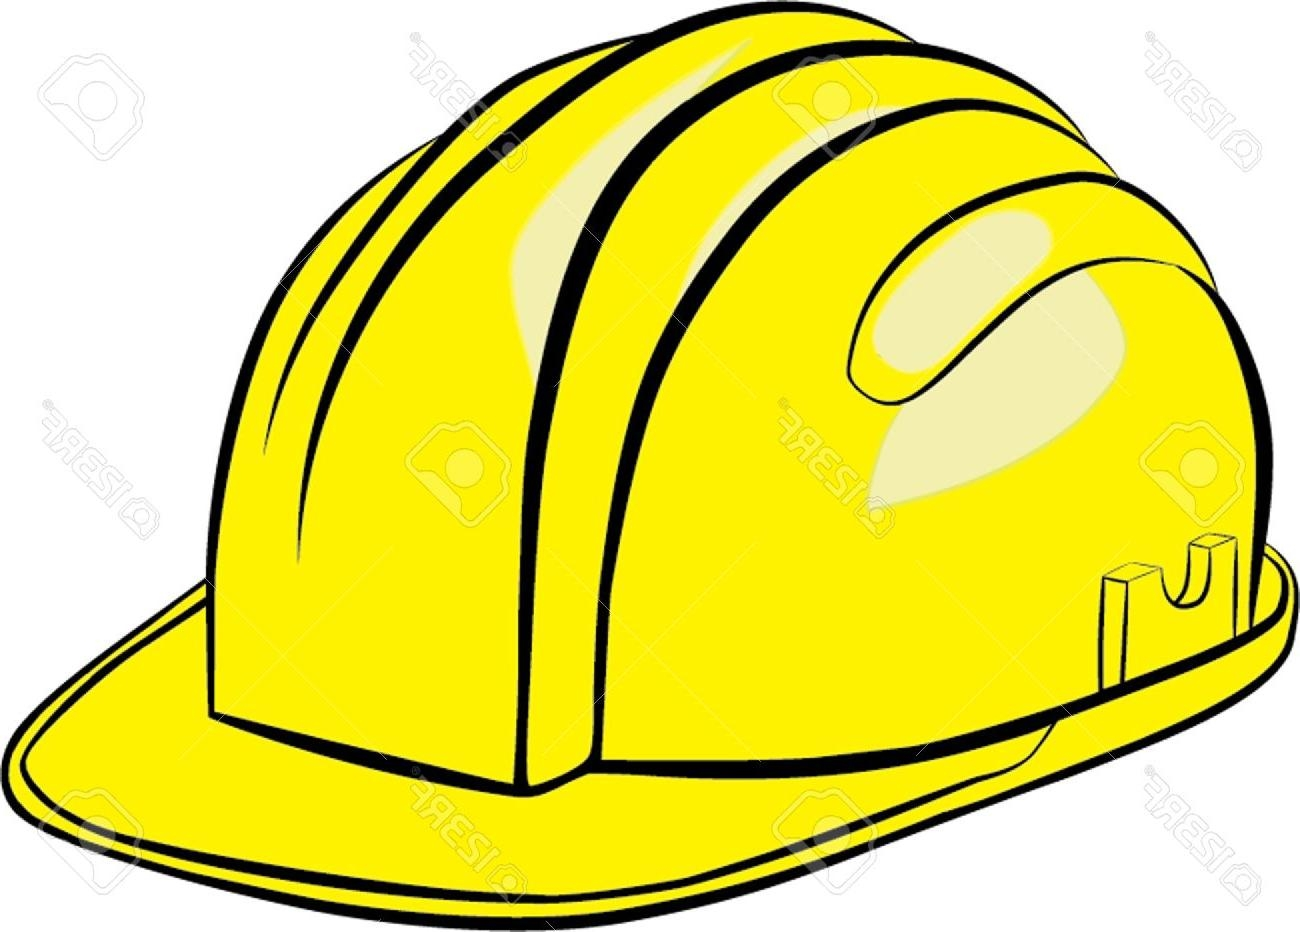 Construction Hat Clipart at GetDrawings.com.